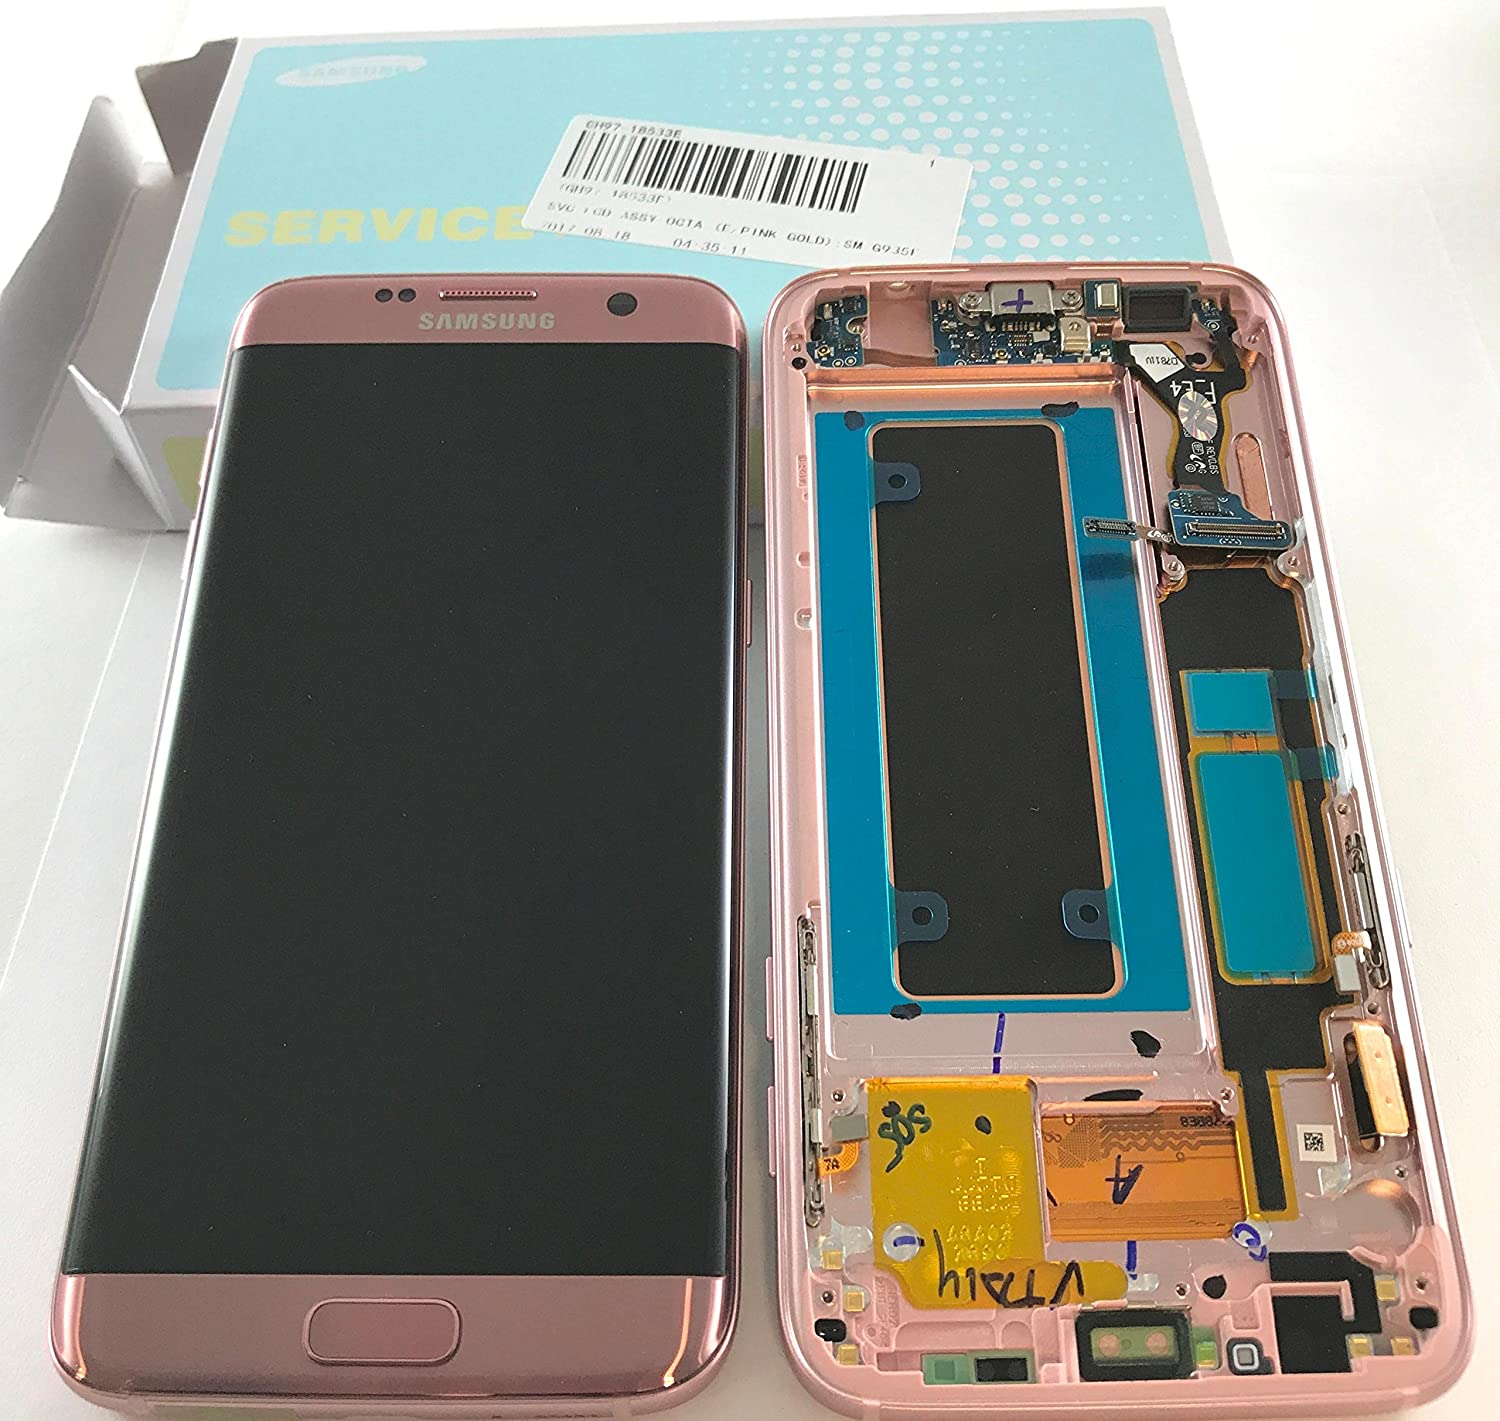 Samsung Genuine Galaxy S7 Edge G935F LCD + Touch Screen Digitizer Complete  With frame, home button, side keys, microphone and usb flex, ( NOT